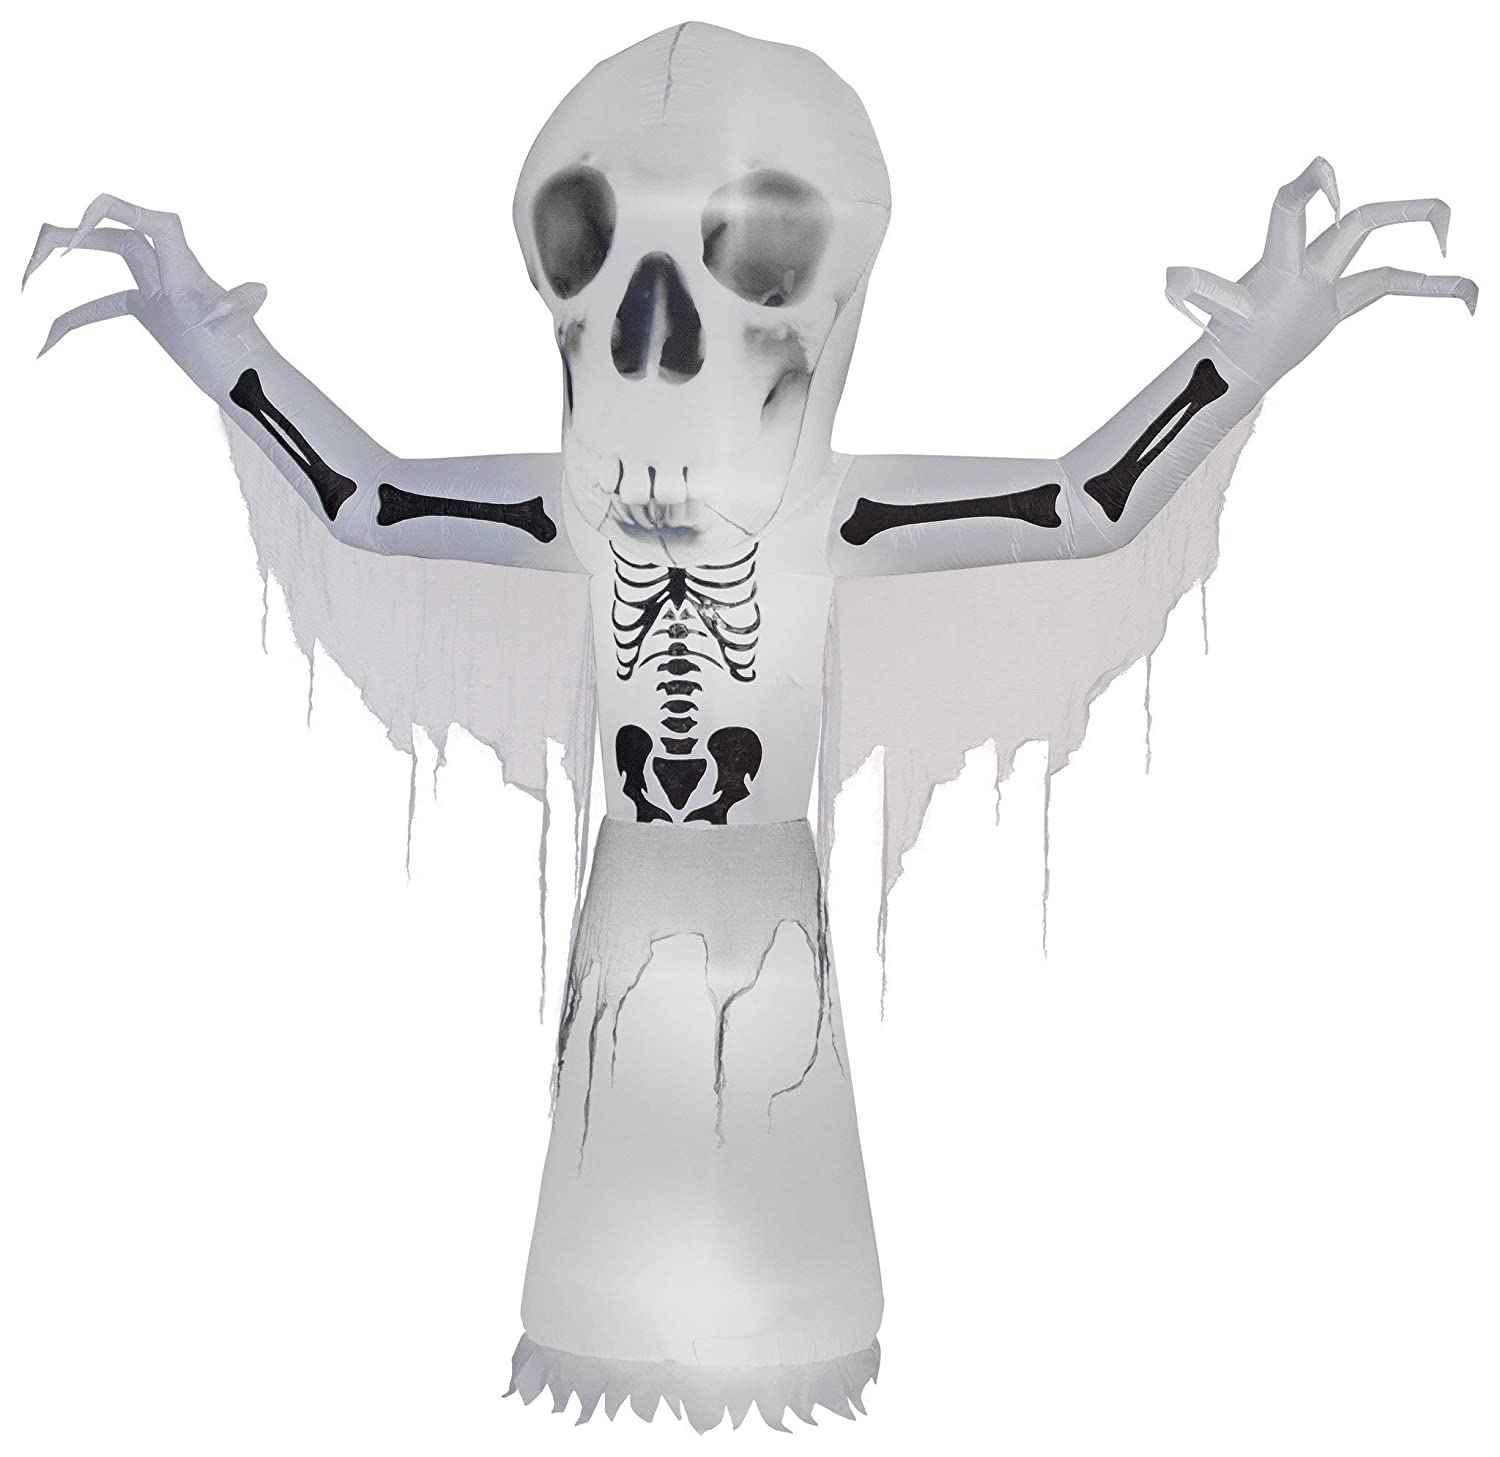 10' Airblown Short Circuit Thunder Bare Bones Halloween Inflatable Gemmy